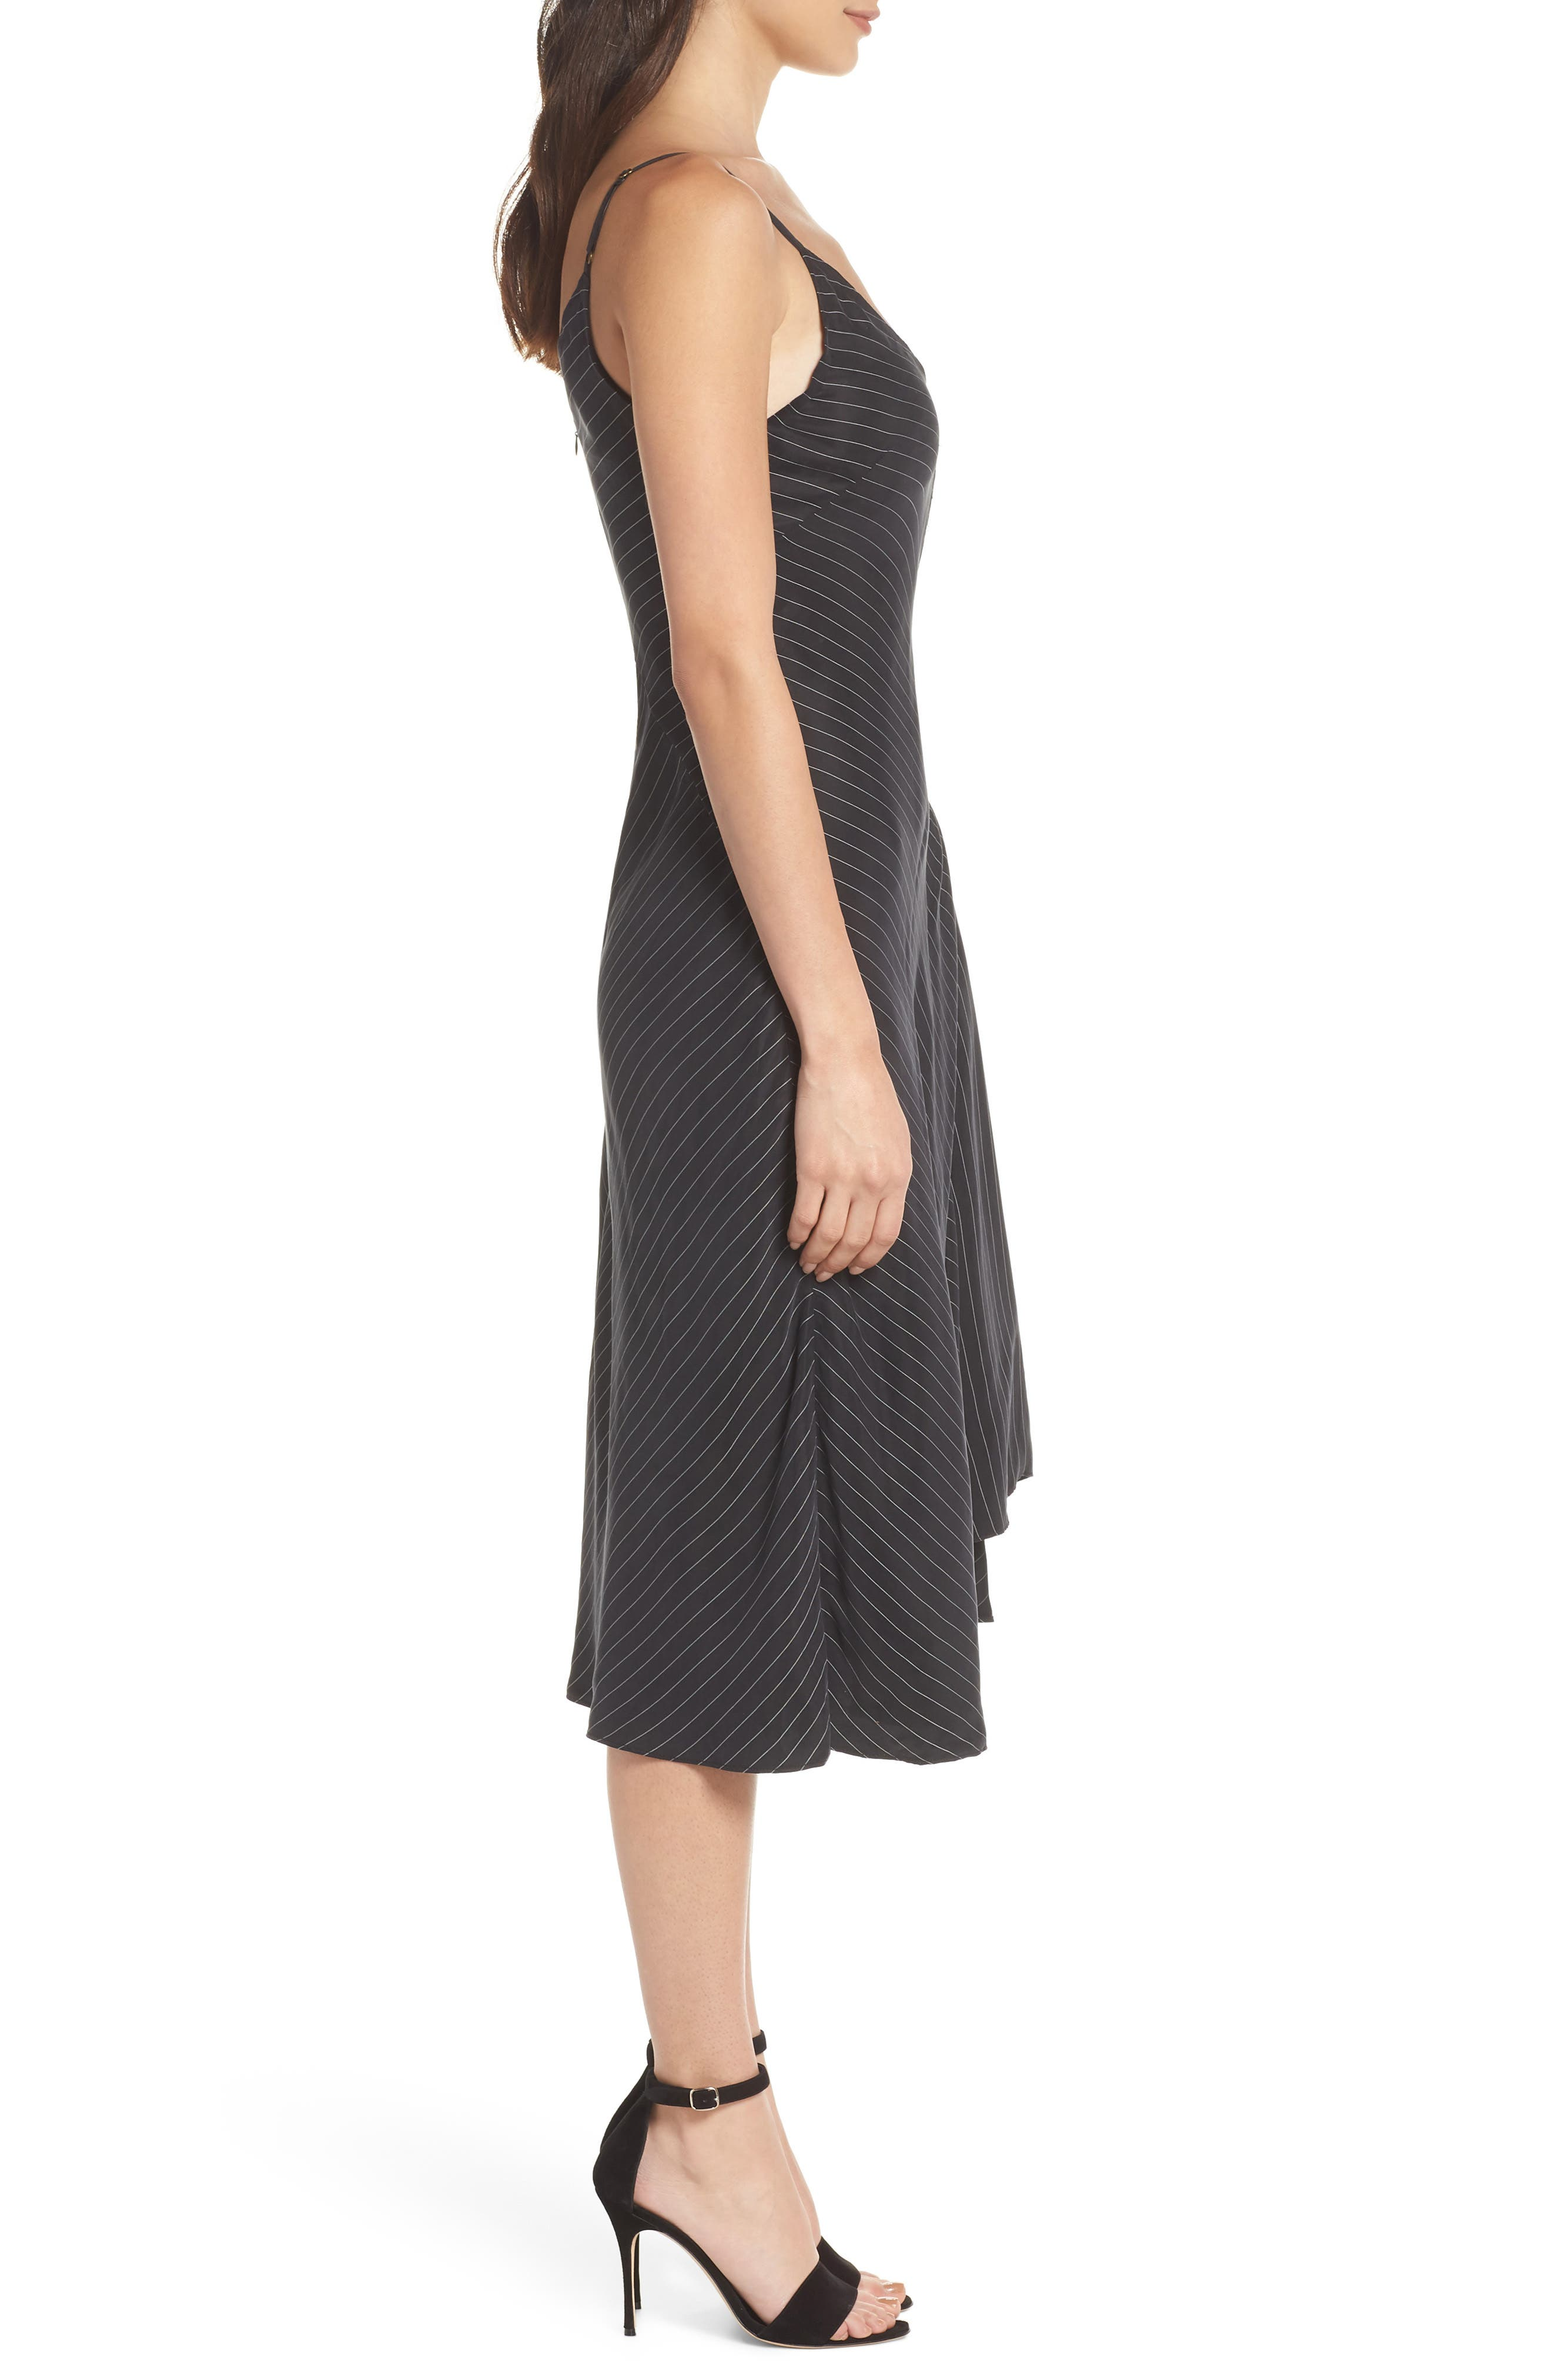 Bay Area Sleeveless Pinstripe Midi Dress,                             Alternate thumbnail 3, color,                             001